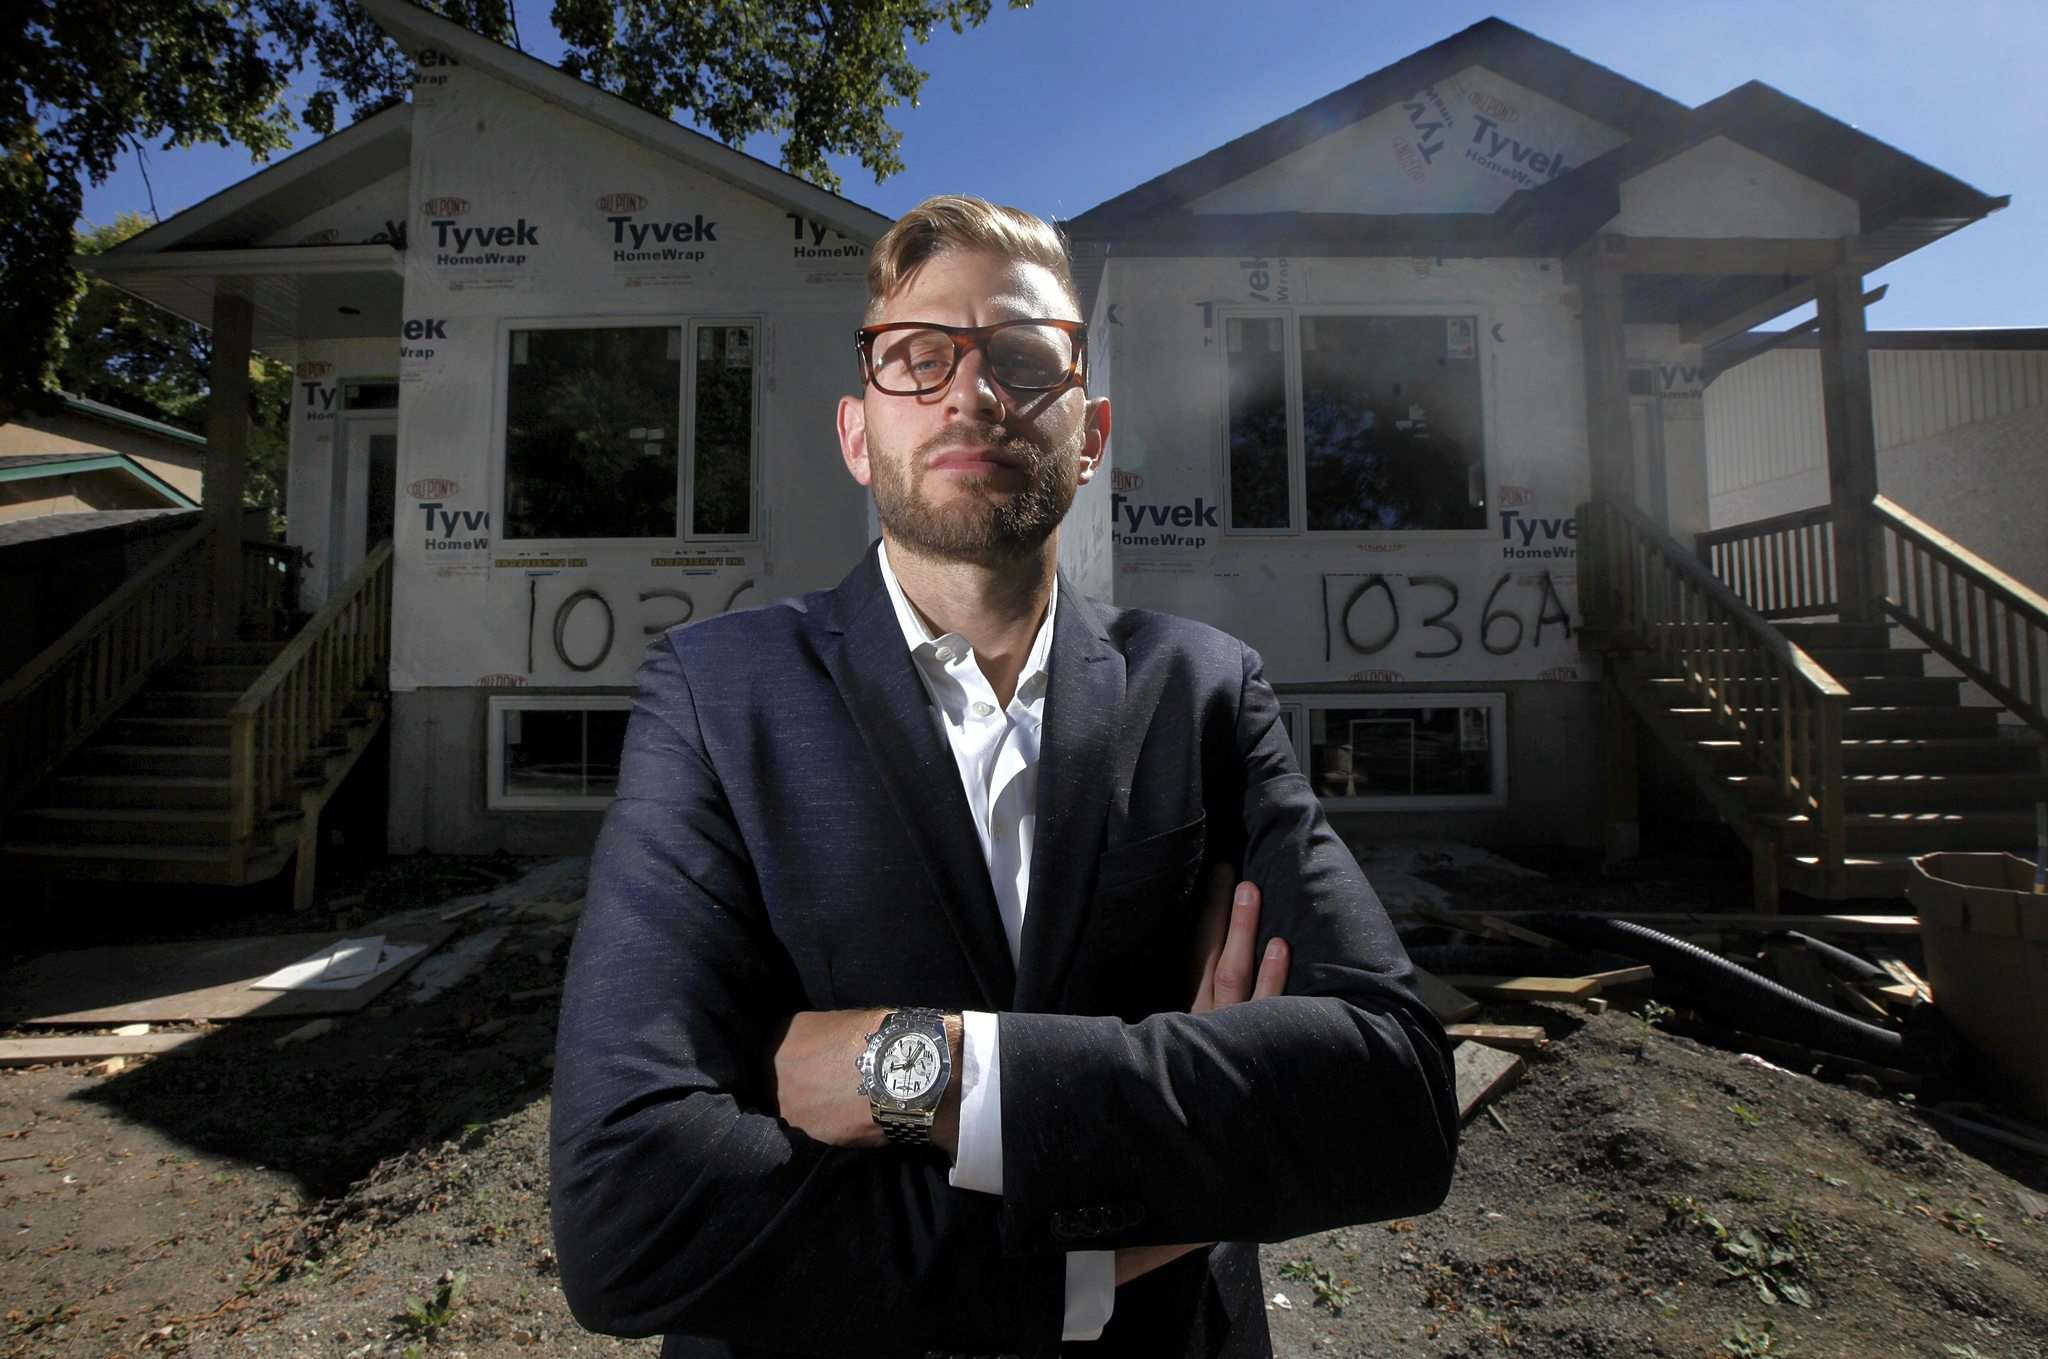 PHIL HOSSACK / WINNIPEG FREE PRESS</p><p>Waterside Development Corp. is building two infill homes on Royse Avenue in Fort Garry. Jon Blumberg of Monopoly Realty says the developer has been building as many as a dozen single-family infill homes a year.</p></p>